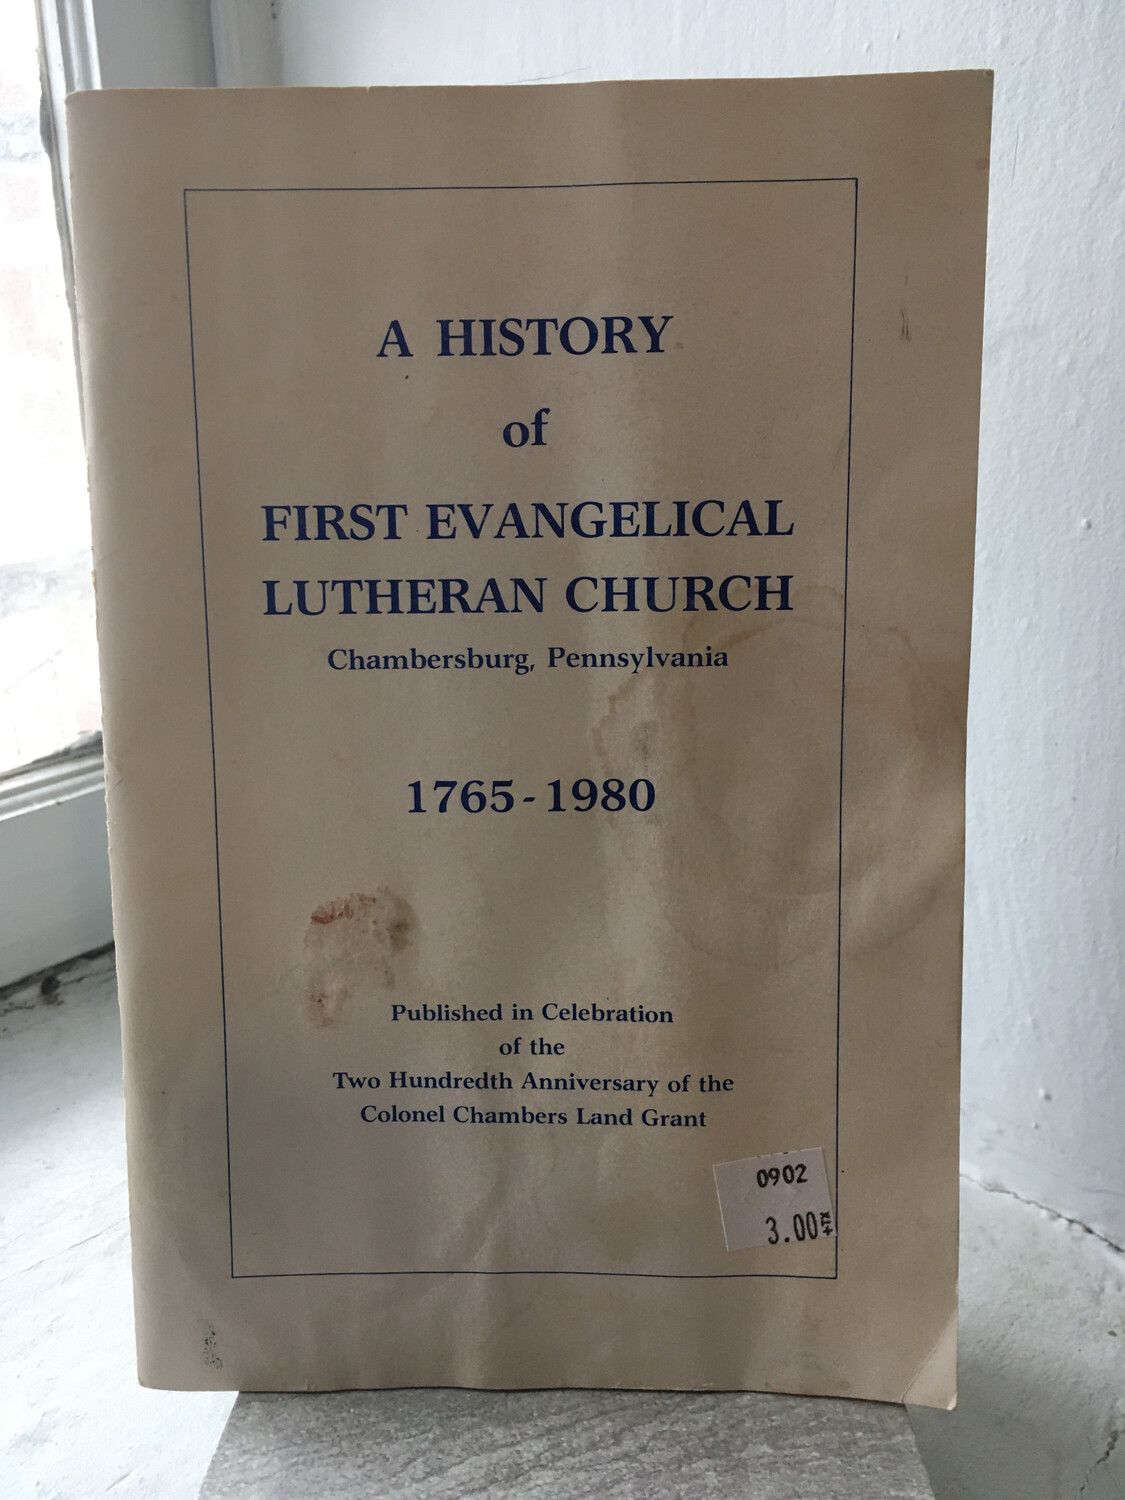 A History of First Evangelical Lutheran Church